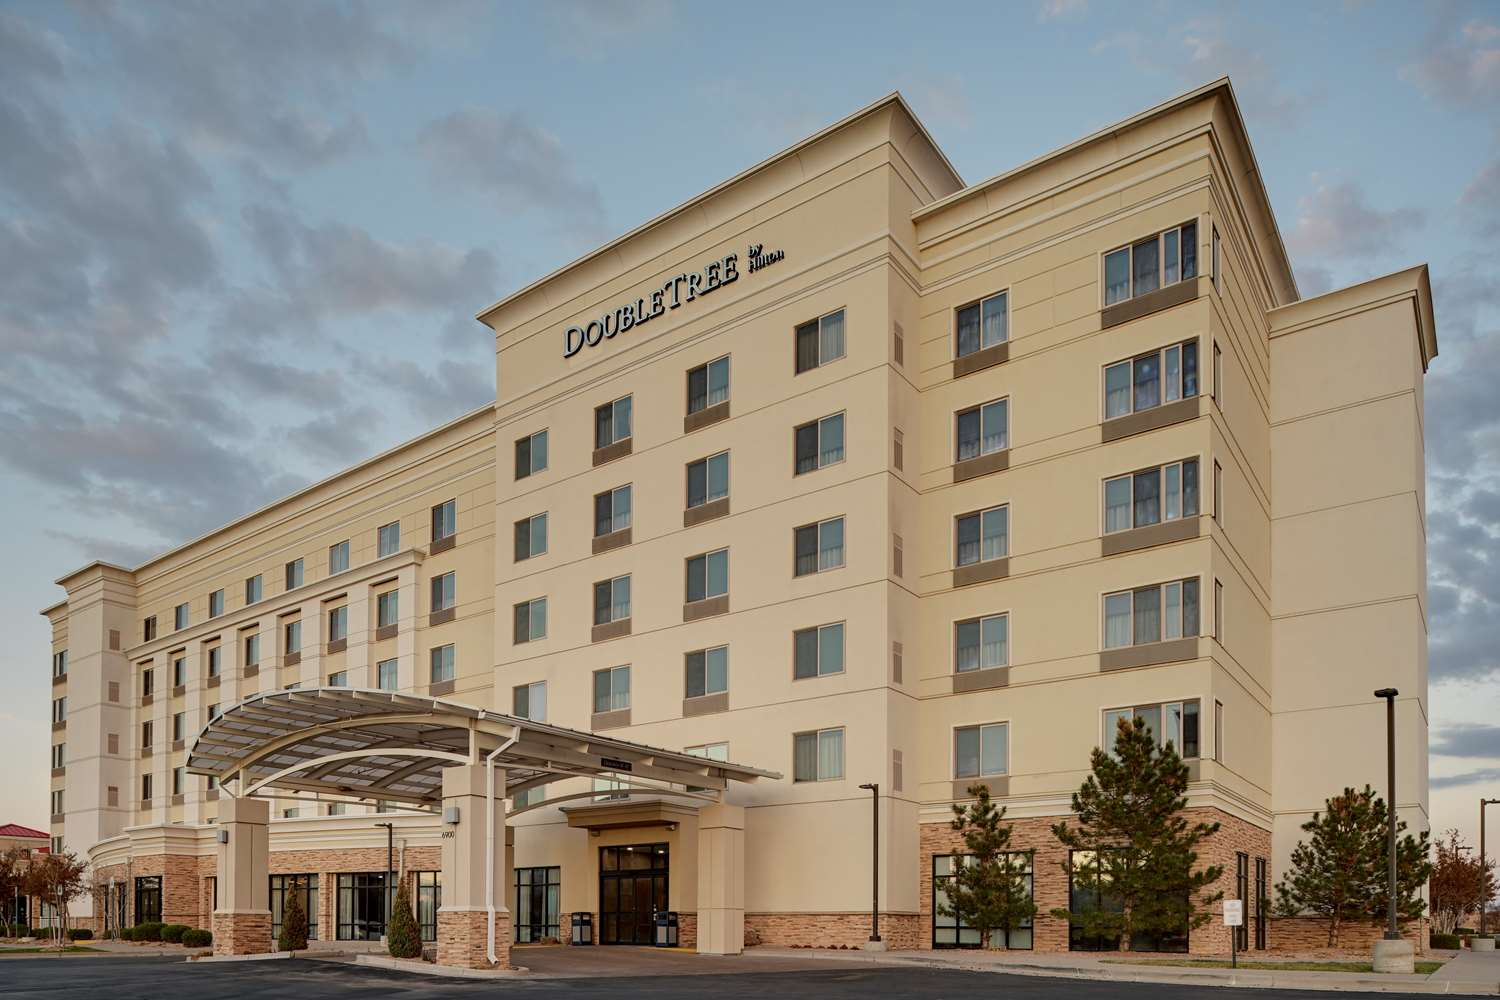 Doubletree By Hilton Denver Airport